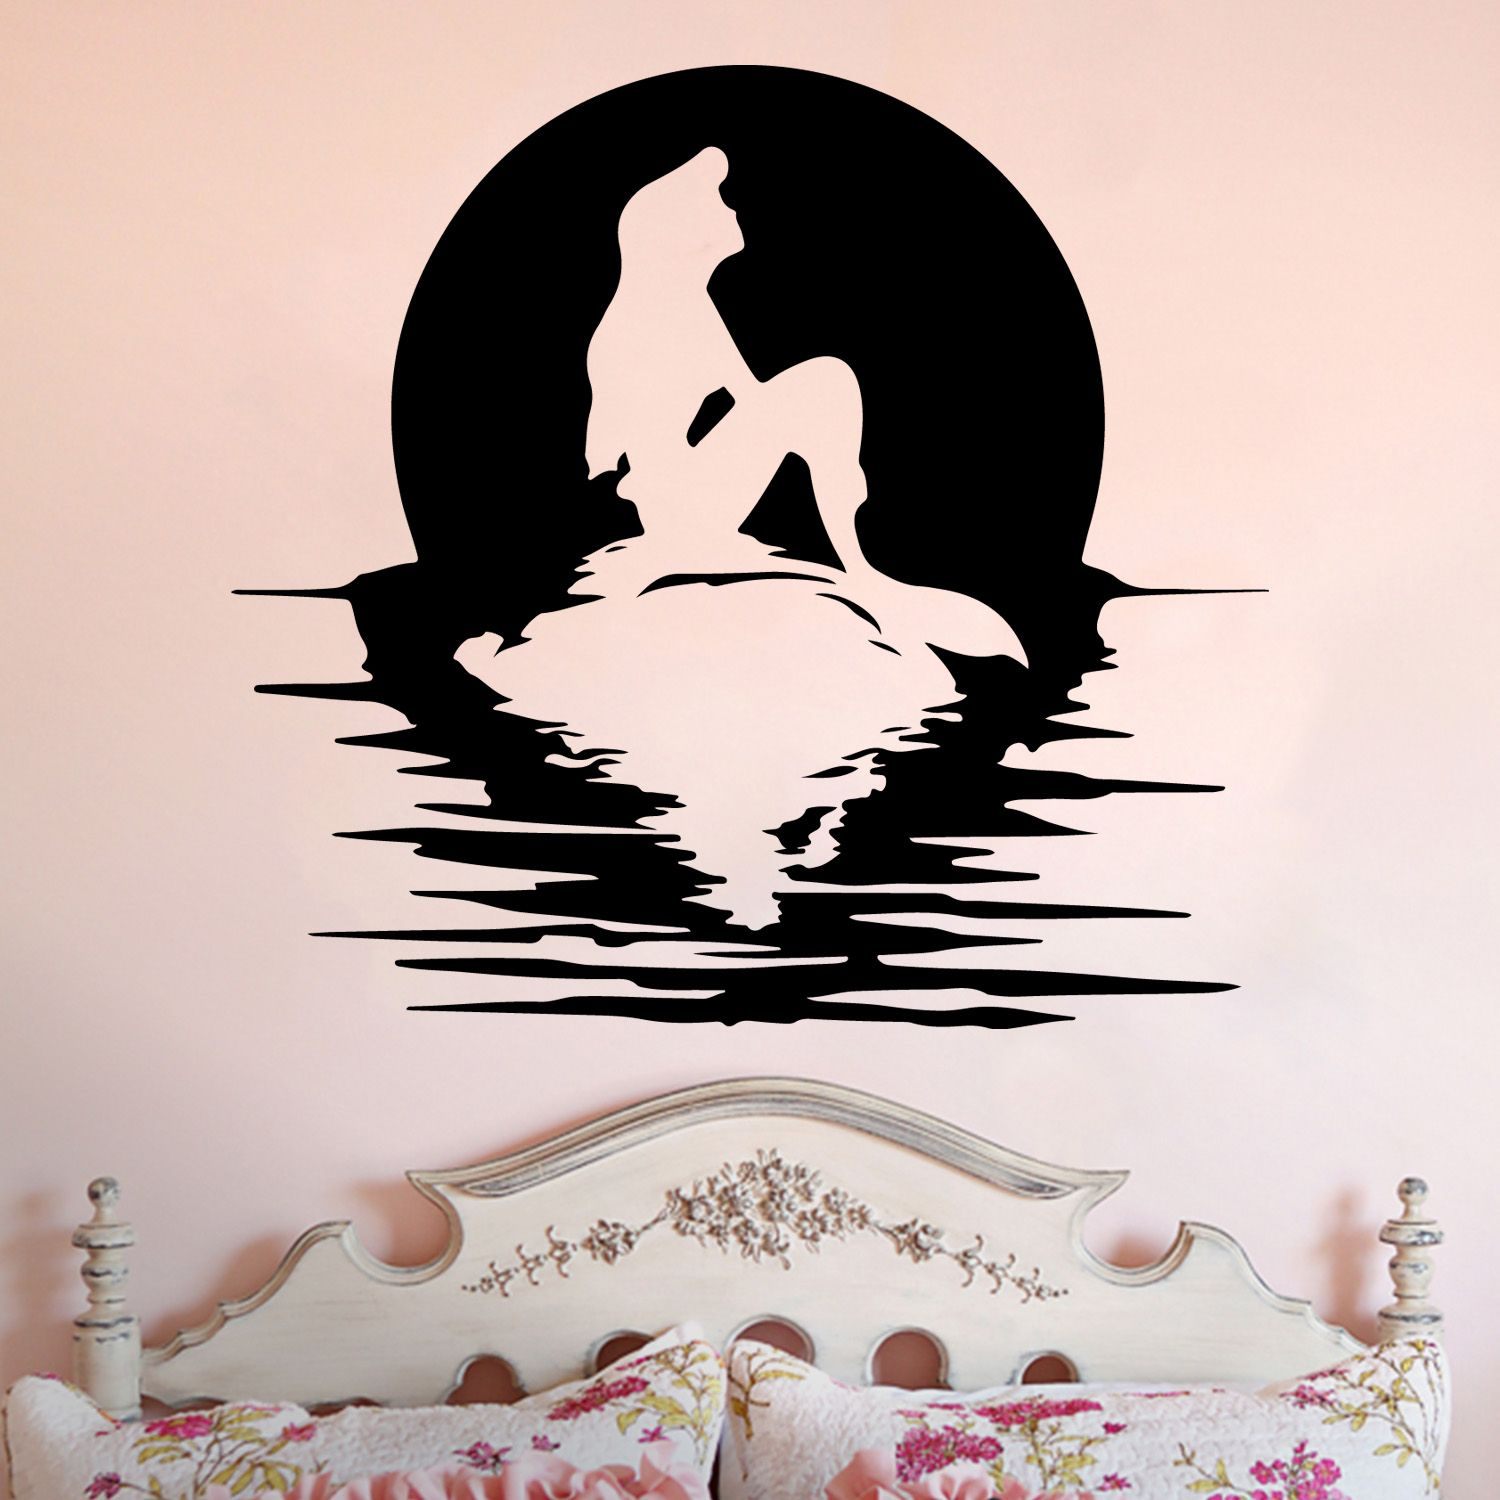 Ariel full moon silhouette little mermaid inspired vinyl wall ariel full moon silhouette little mermaid inspired vinyl wall decal amipublicfo Images